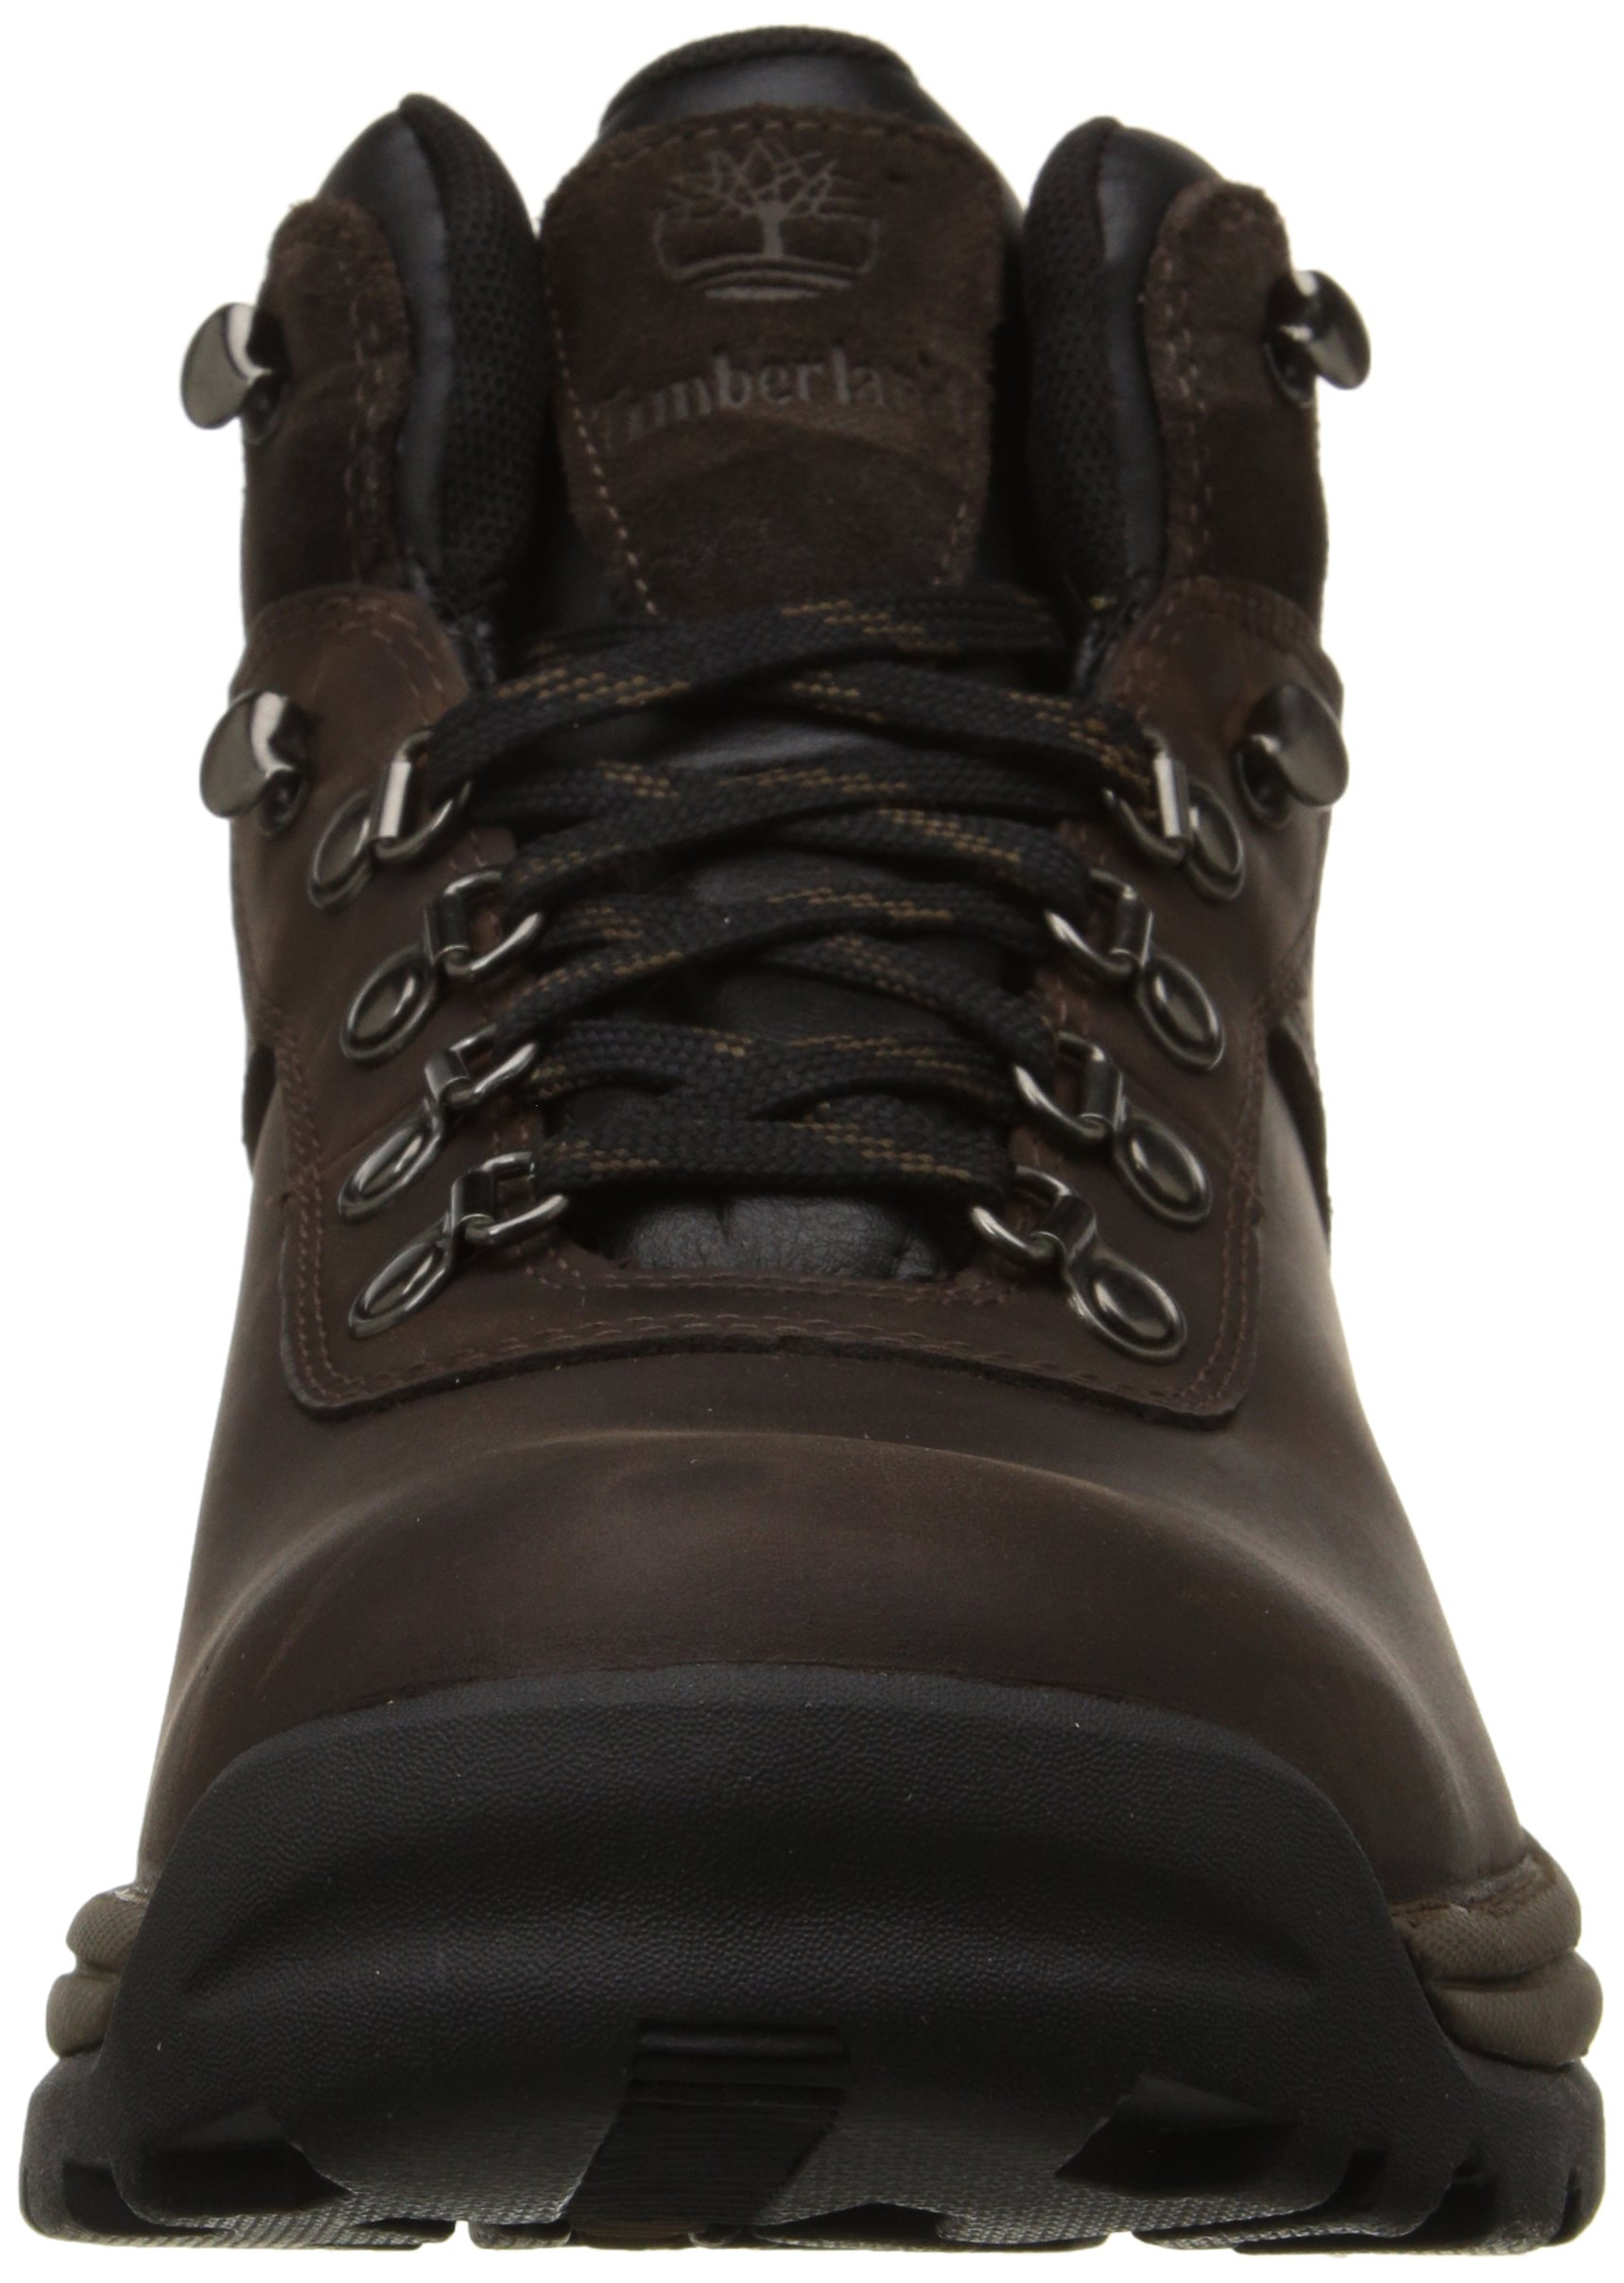 Timberland Men's Flume Waterproof Boot,Dark Brown,13 M US by Timberland (Image #4)